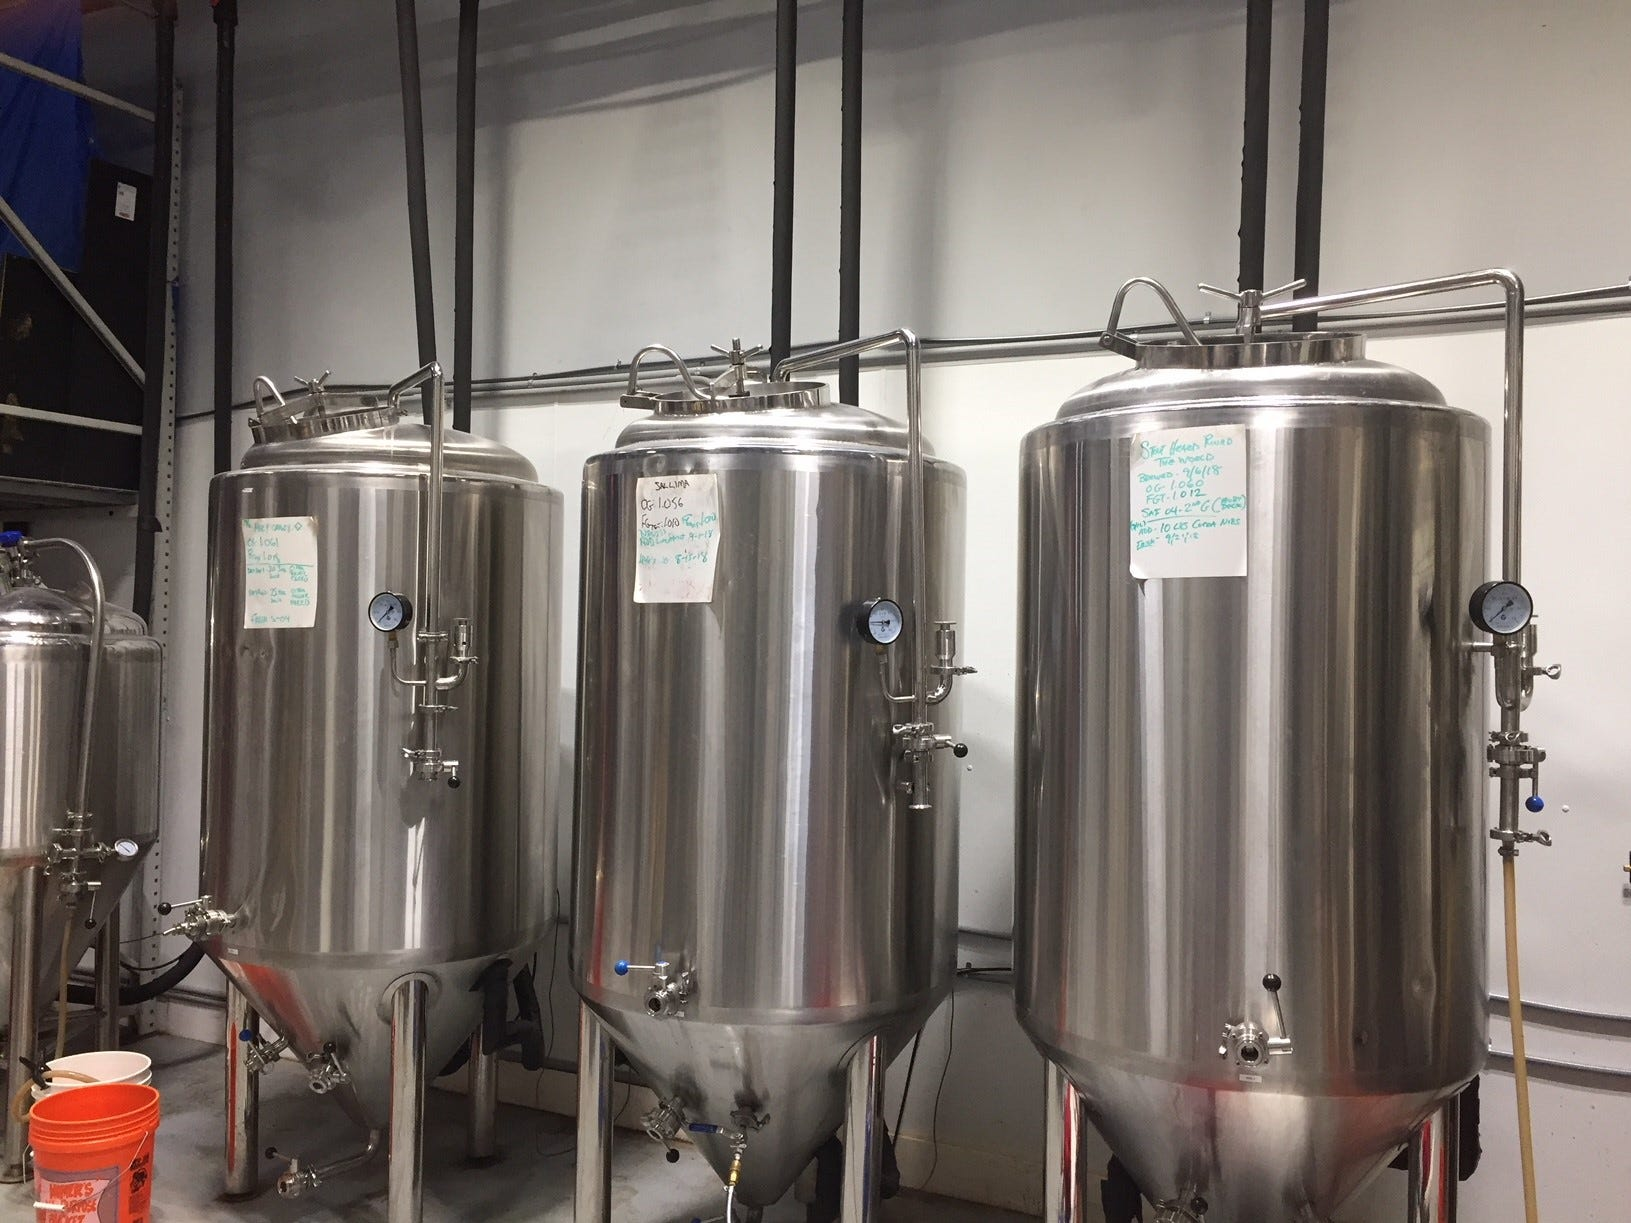 Three kinds of Death of the Fox beer mature in the brite tanks of the brewery.